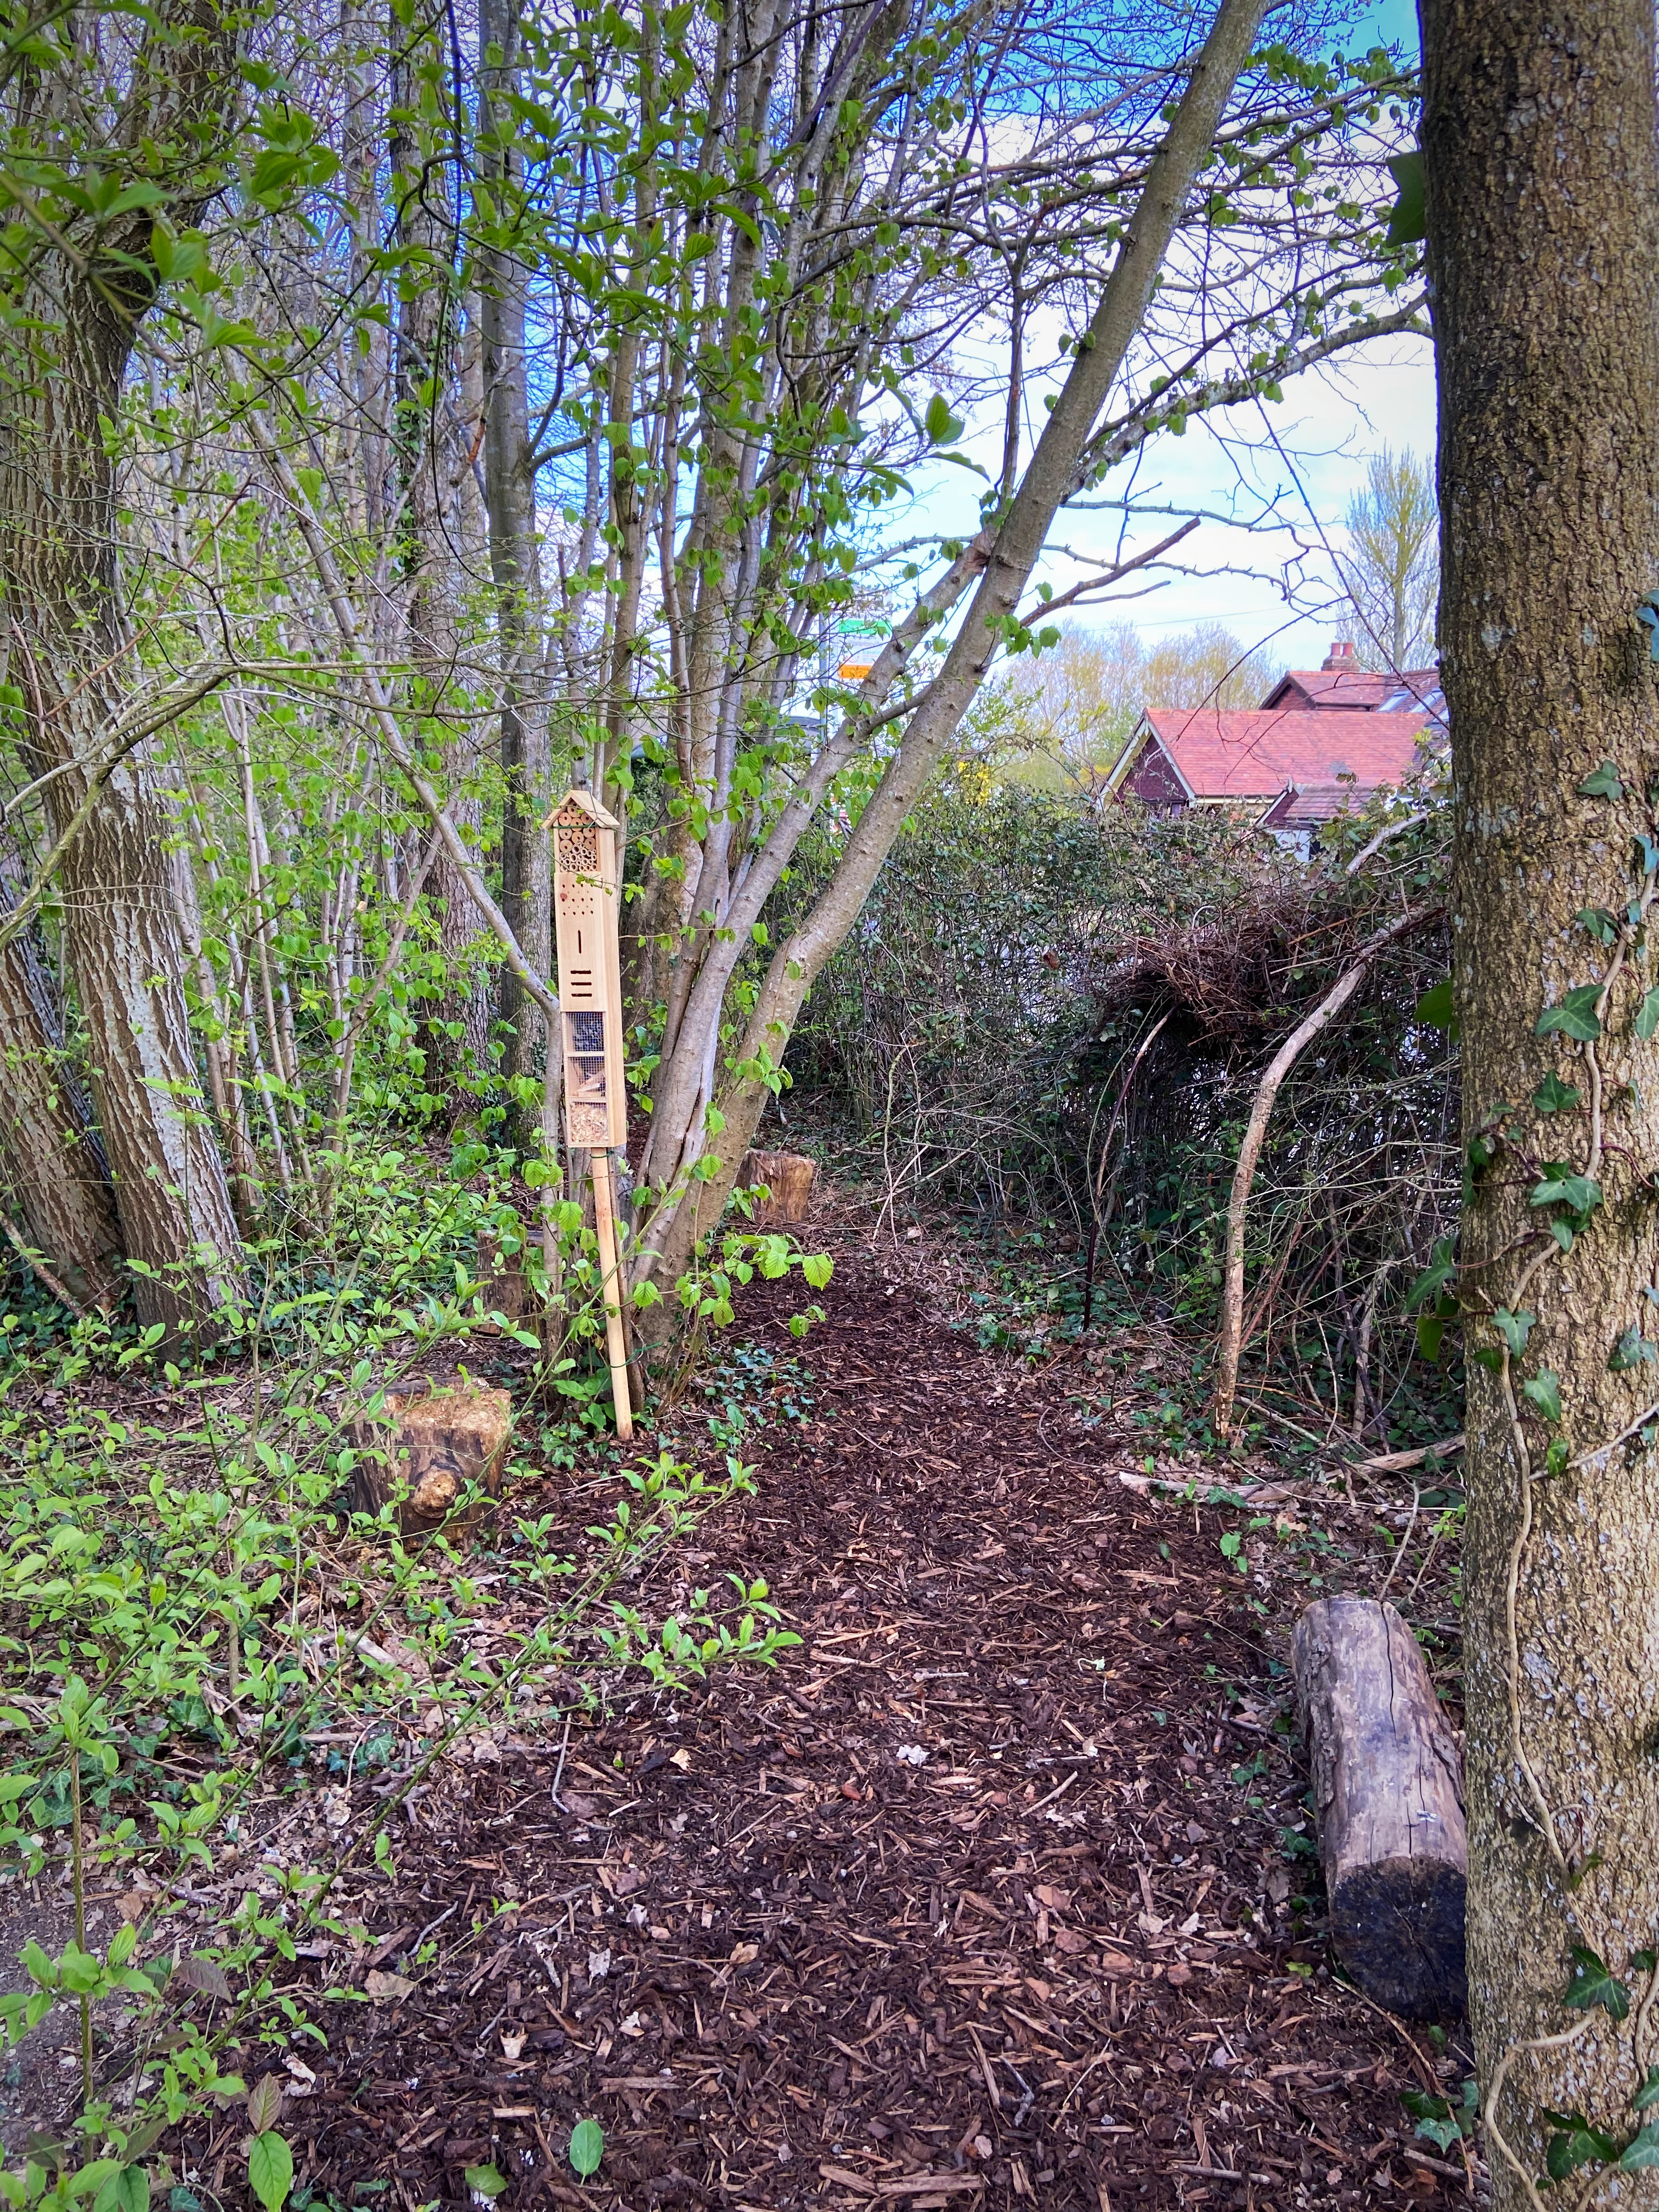 A Woody Walk has been created on the school grounds to allow children to surround themselves with nature and realise how to appreciate and respect it